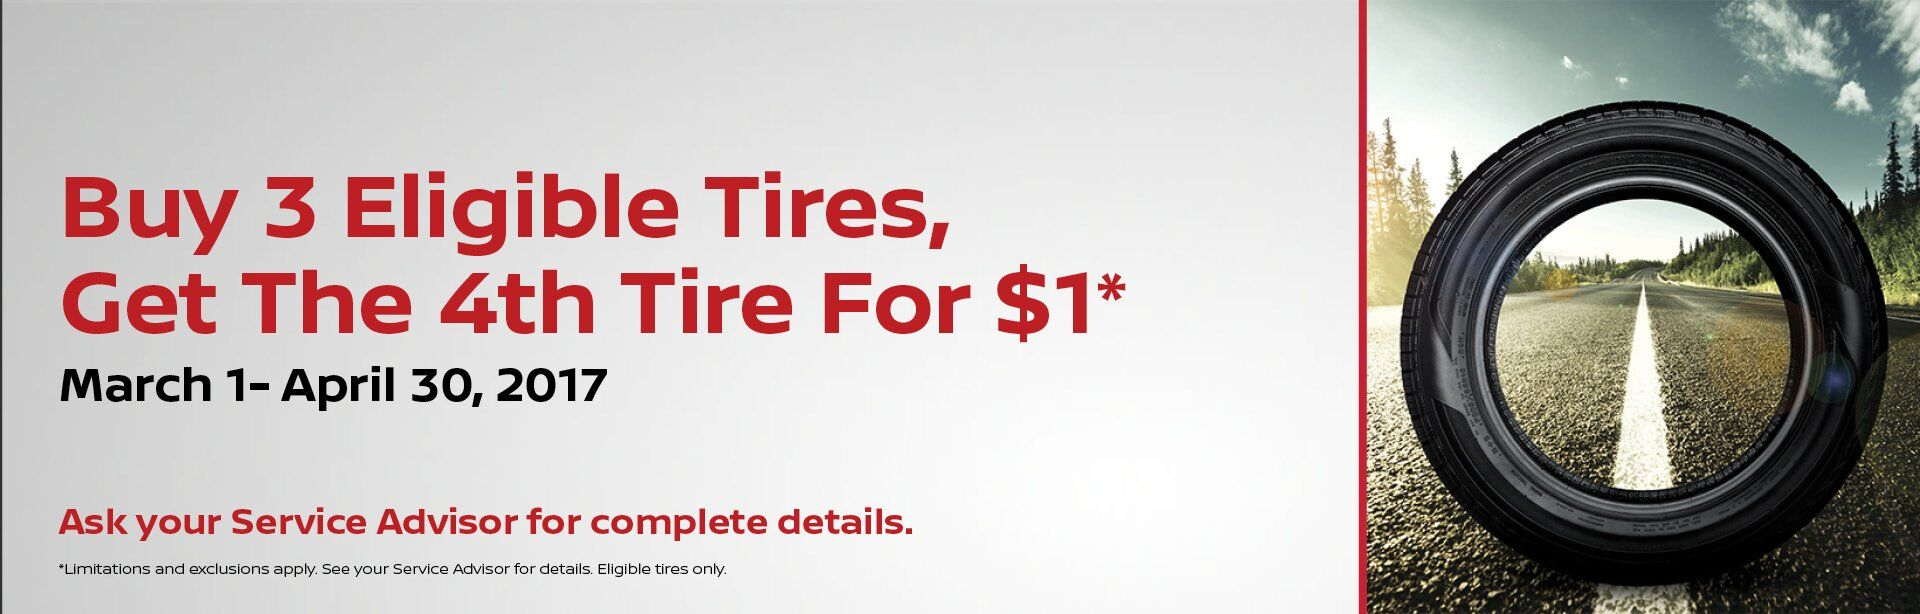 Nissan Buy 3 Tires, Get 4th For $1